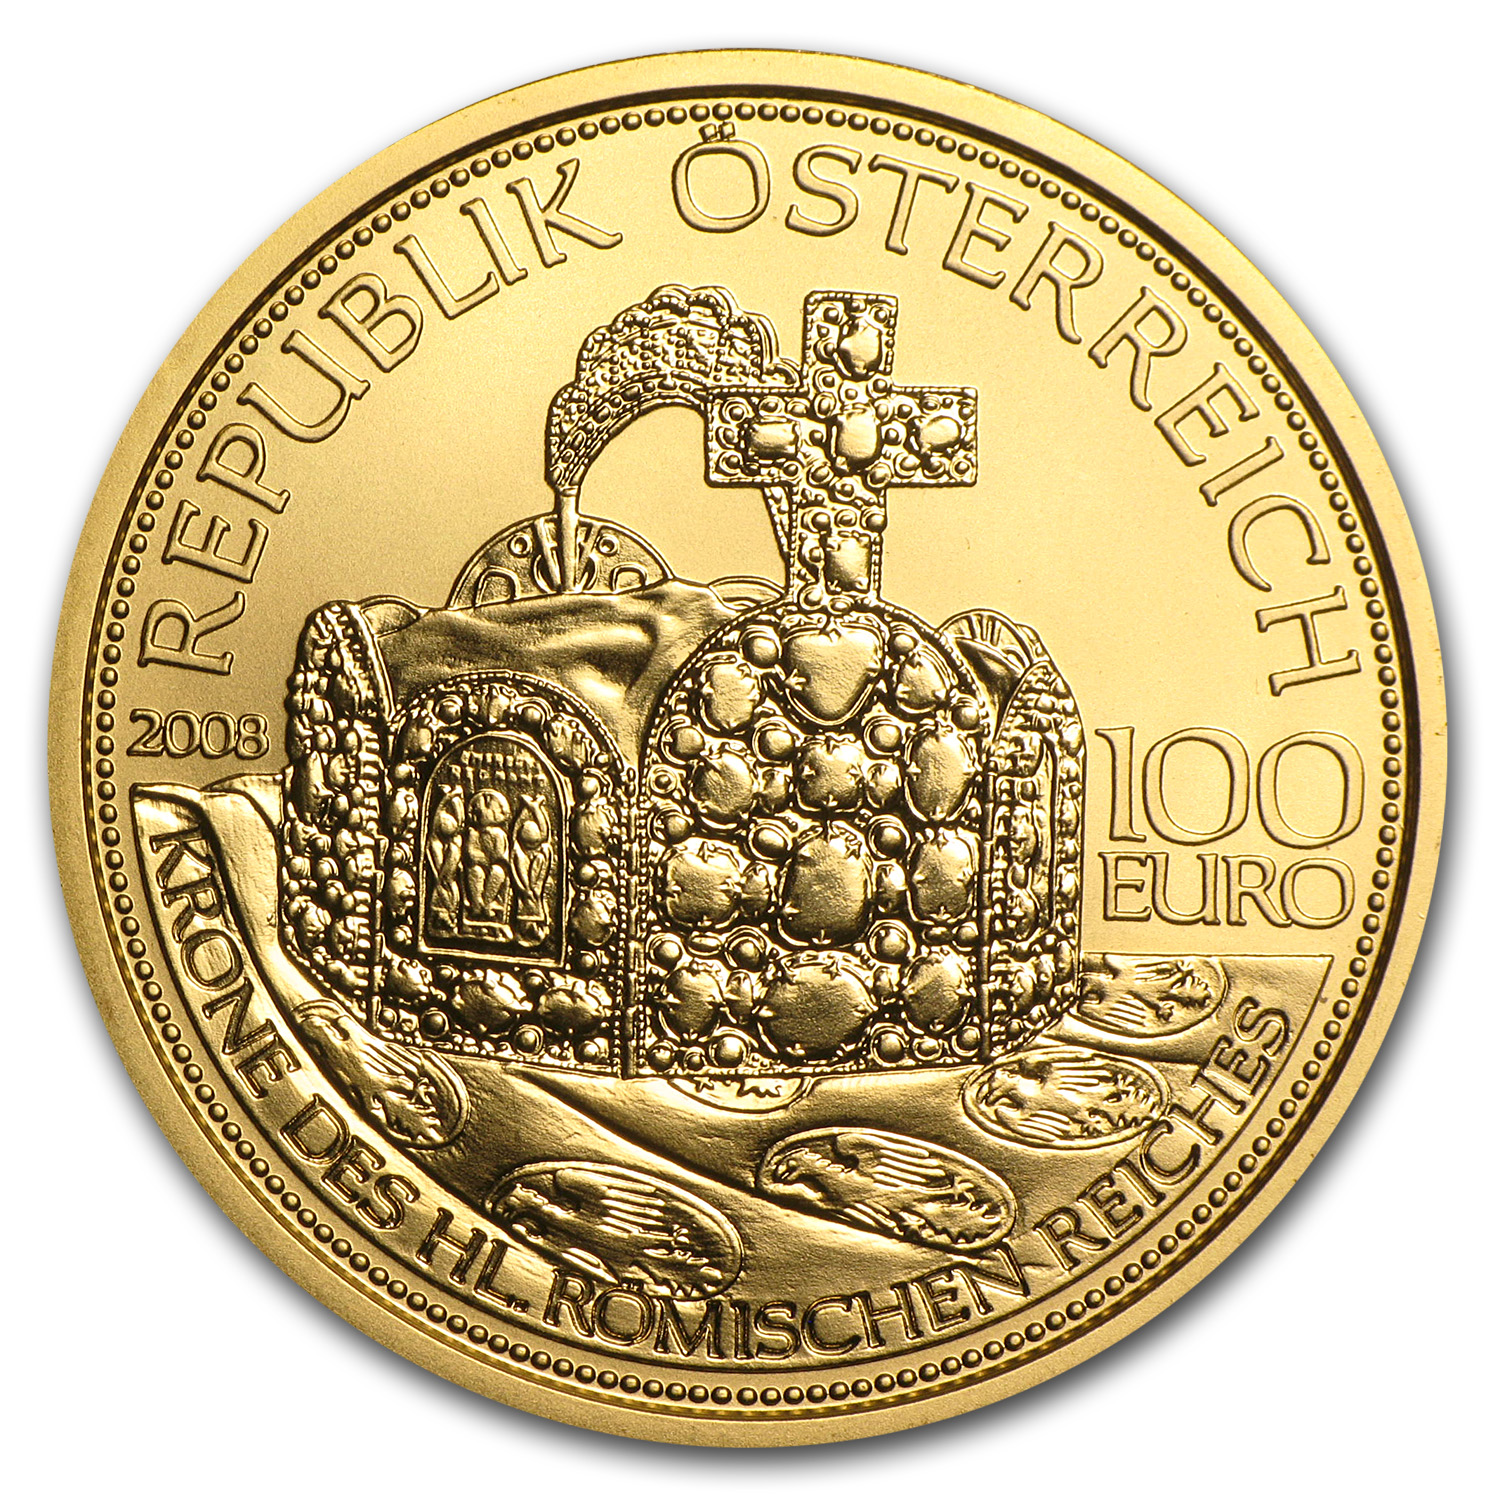 2008 Crown of The Holy Roman Empire 100 Euro Proof Gold Coin